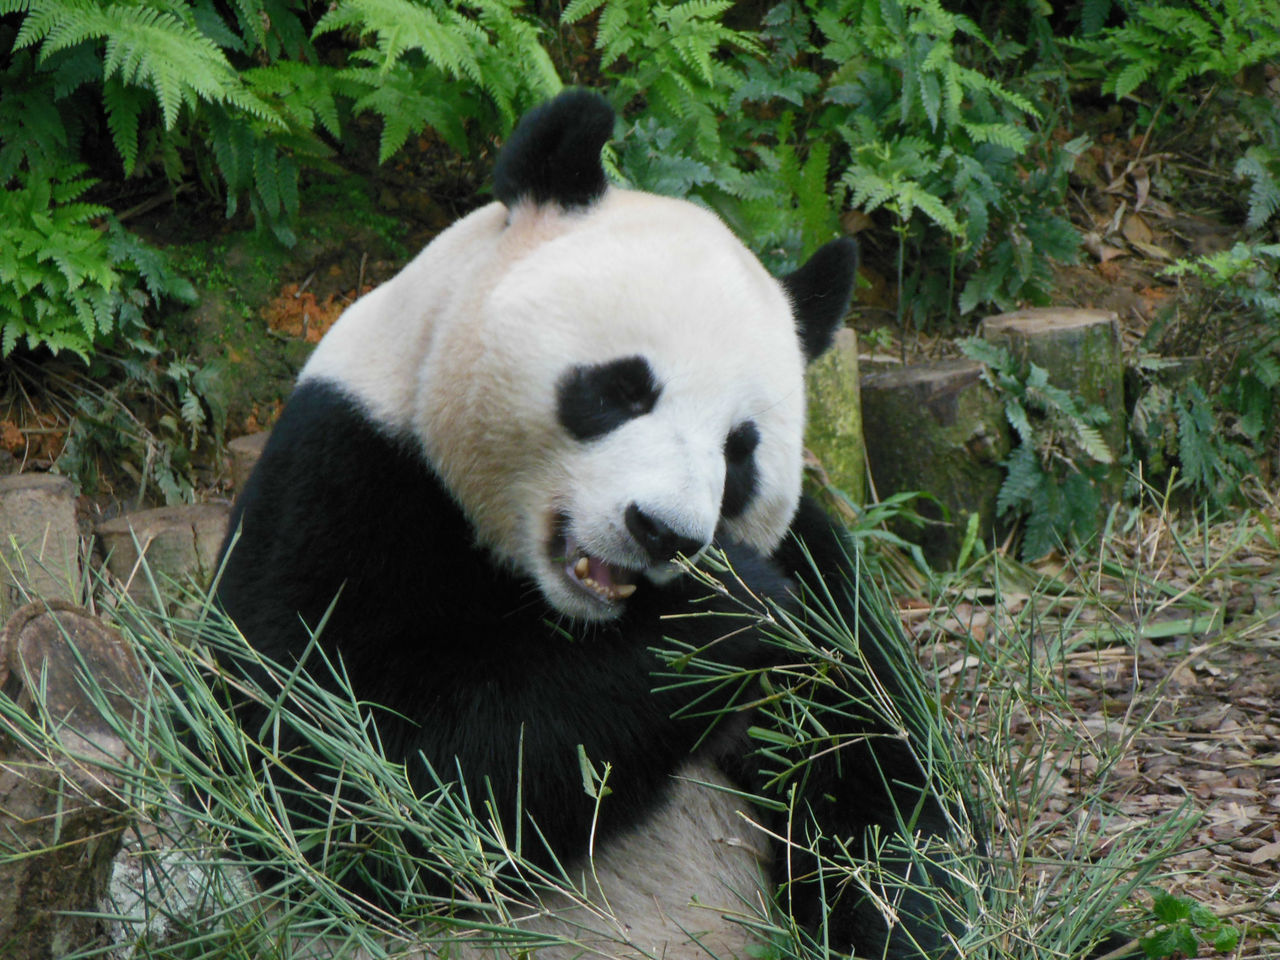 Animal Themes Animals In The Wild Bamboo - Plant Delicious Giant Panda Hungry Indulge Mammal One Animal Panda Panda - Animal Panda Bear Singapore Zoological Garden Way Of Life